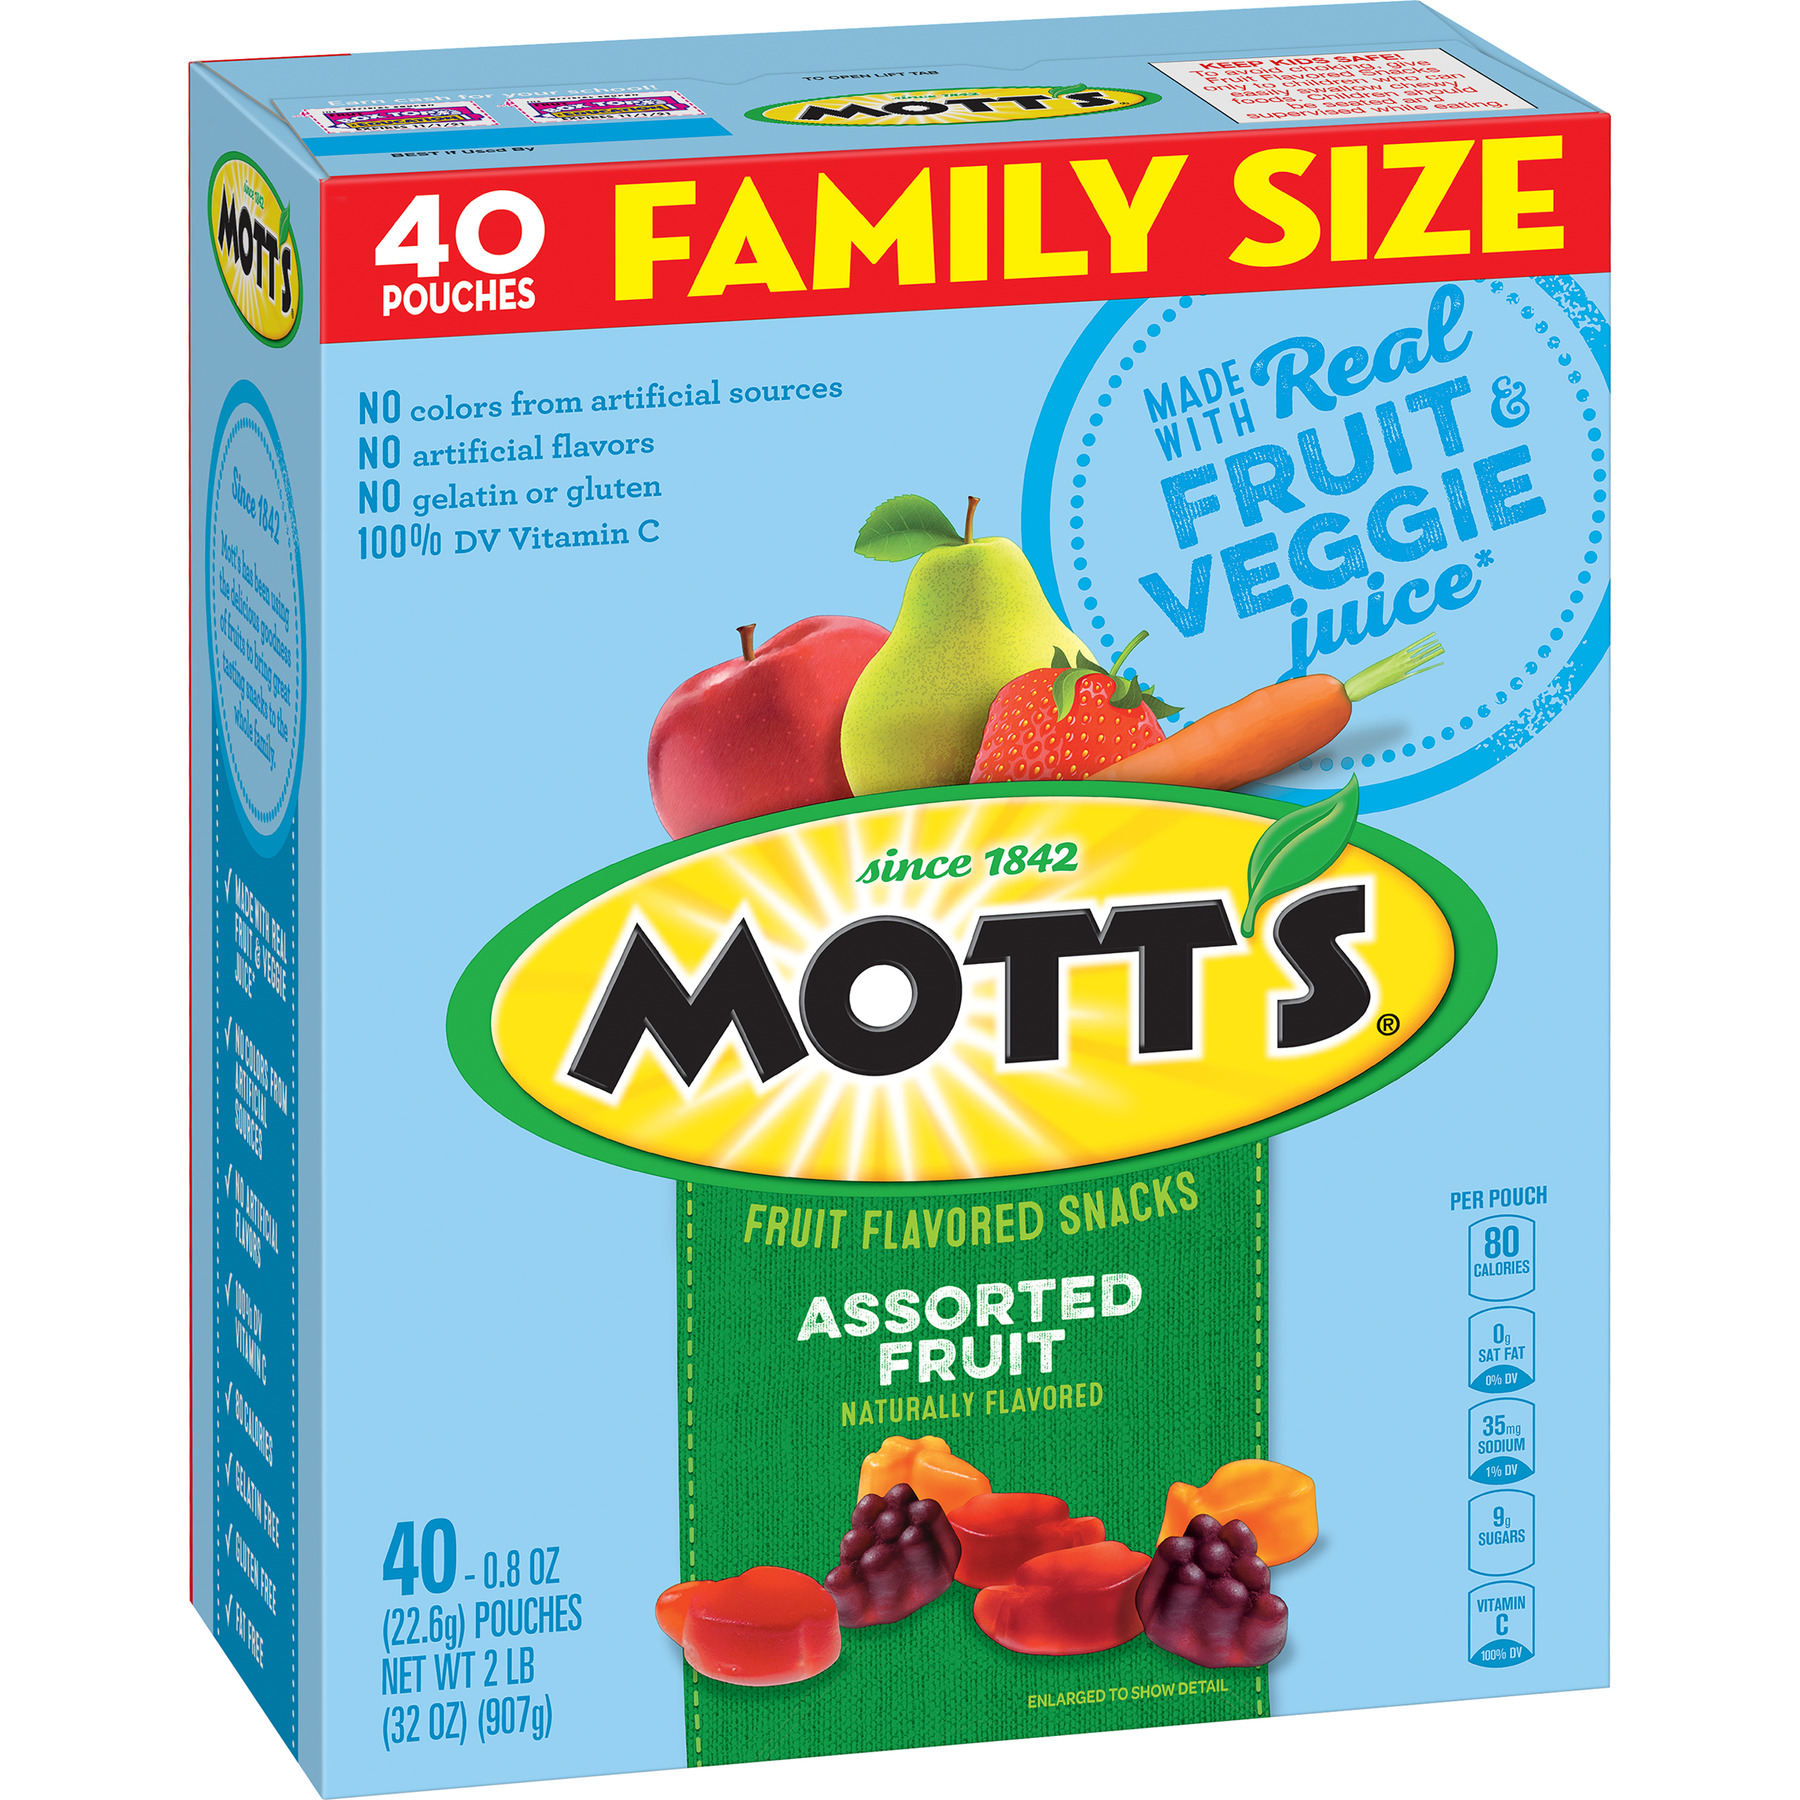 Mott's Medleys Fruit Snacks Family Size 40 Pouches 0.8 oz Each